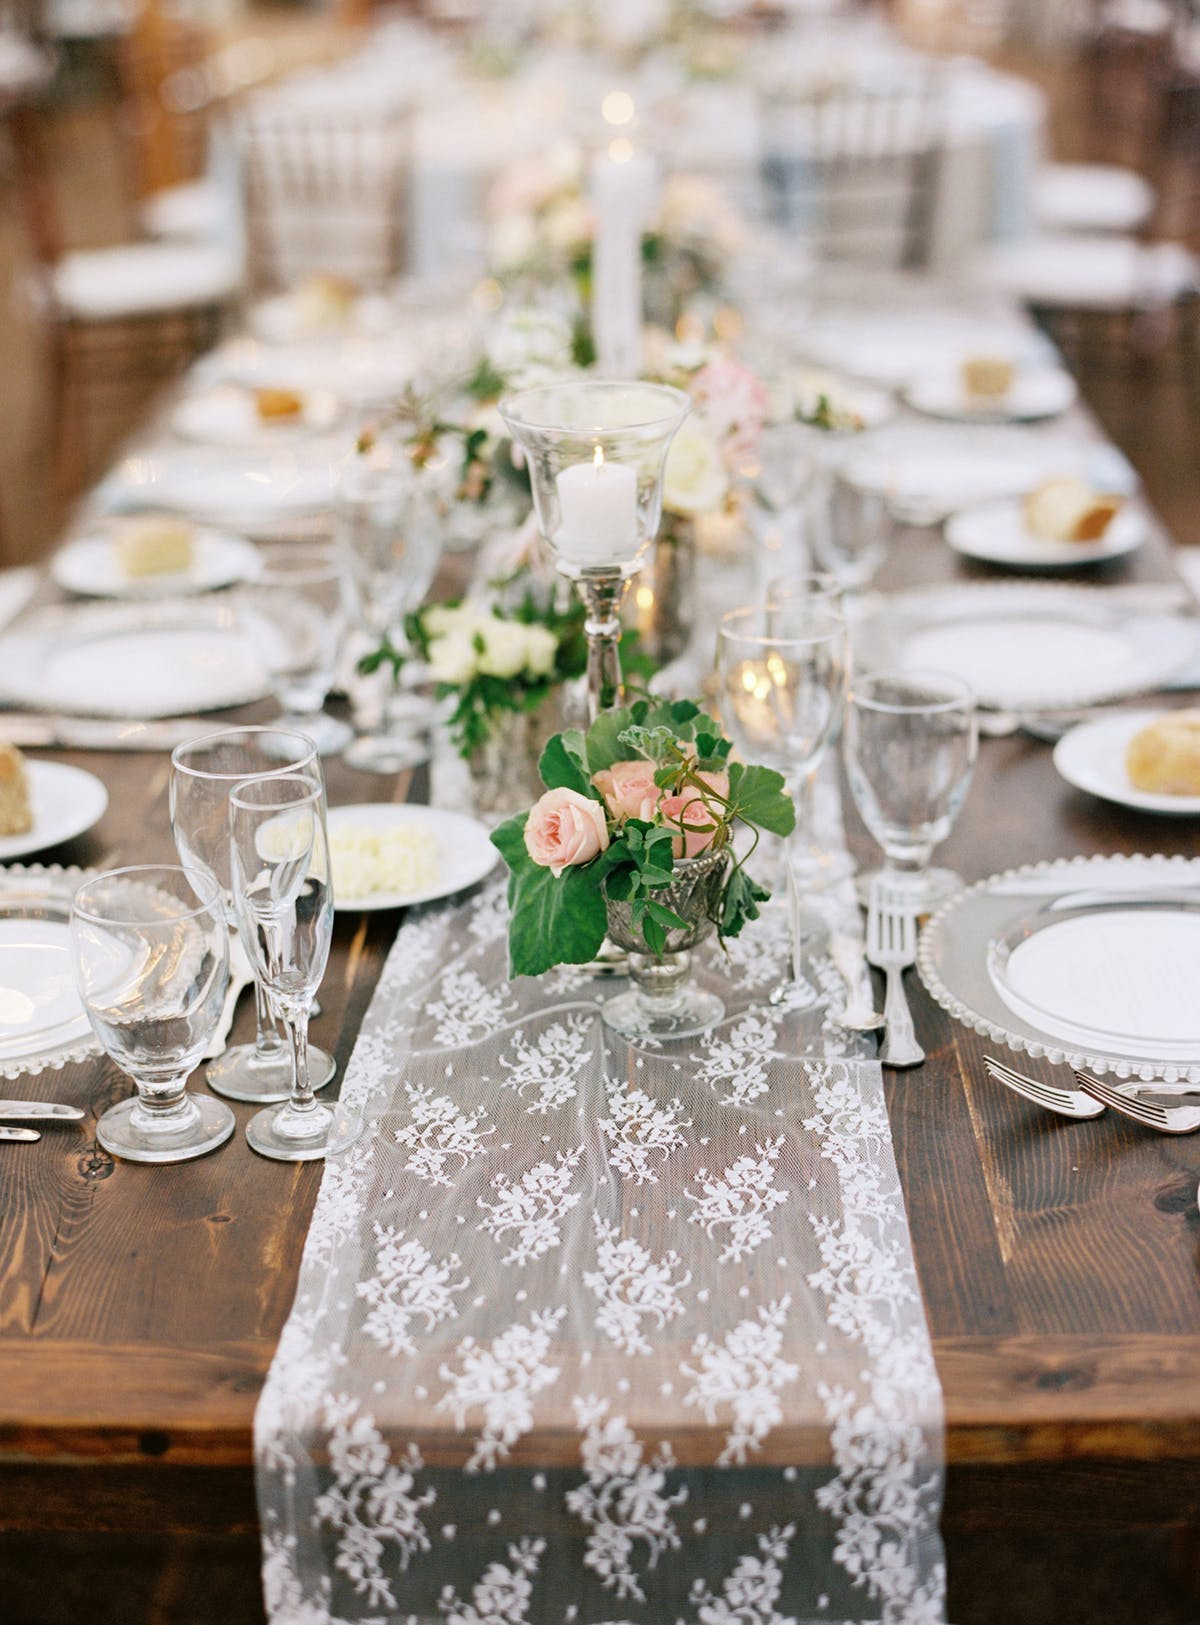 traditional lace and floral wedding table setting ideas